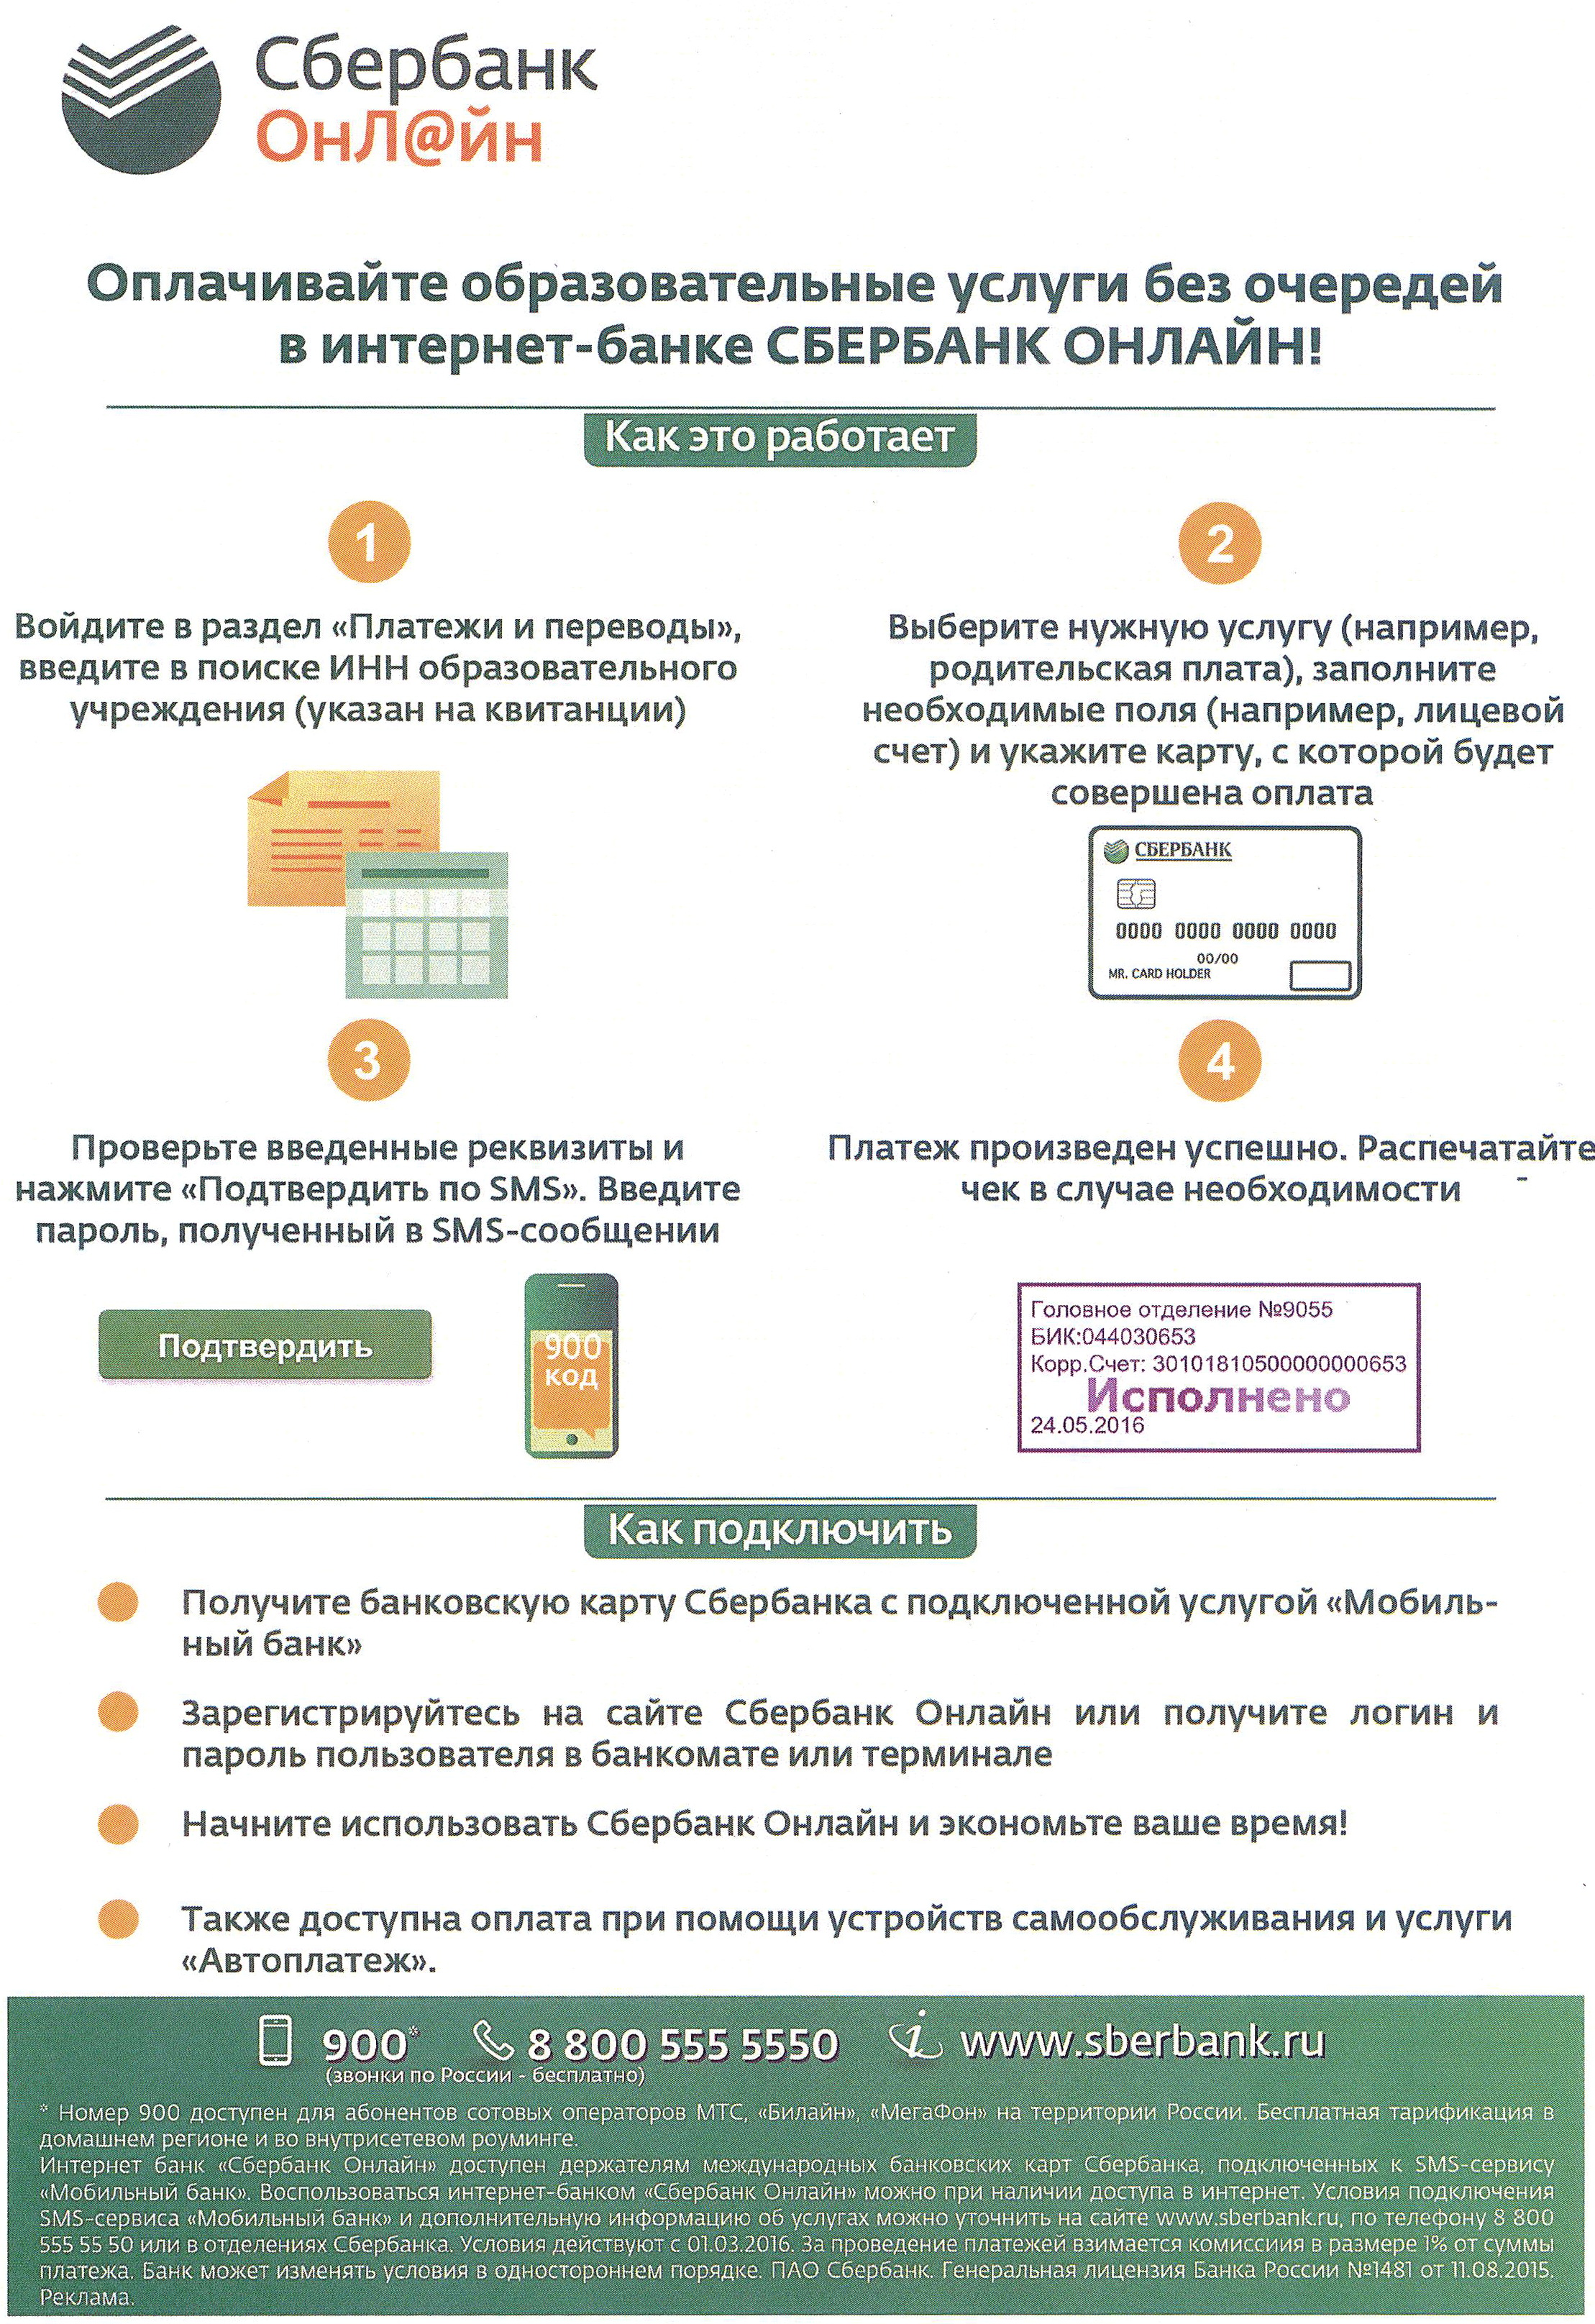 news-sc569-2016-10-31-oplatasberbank